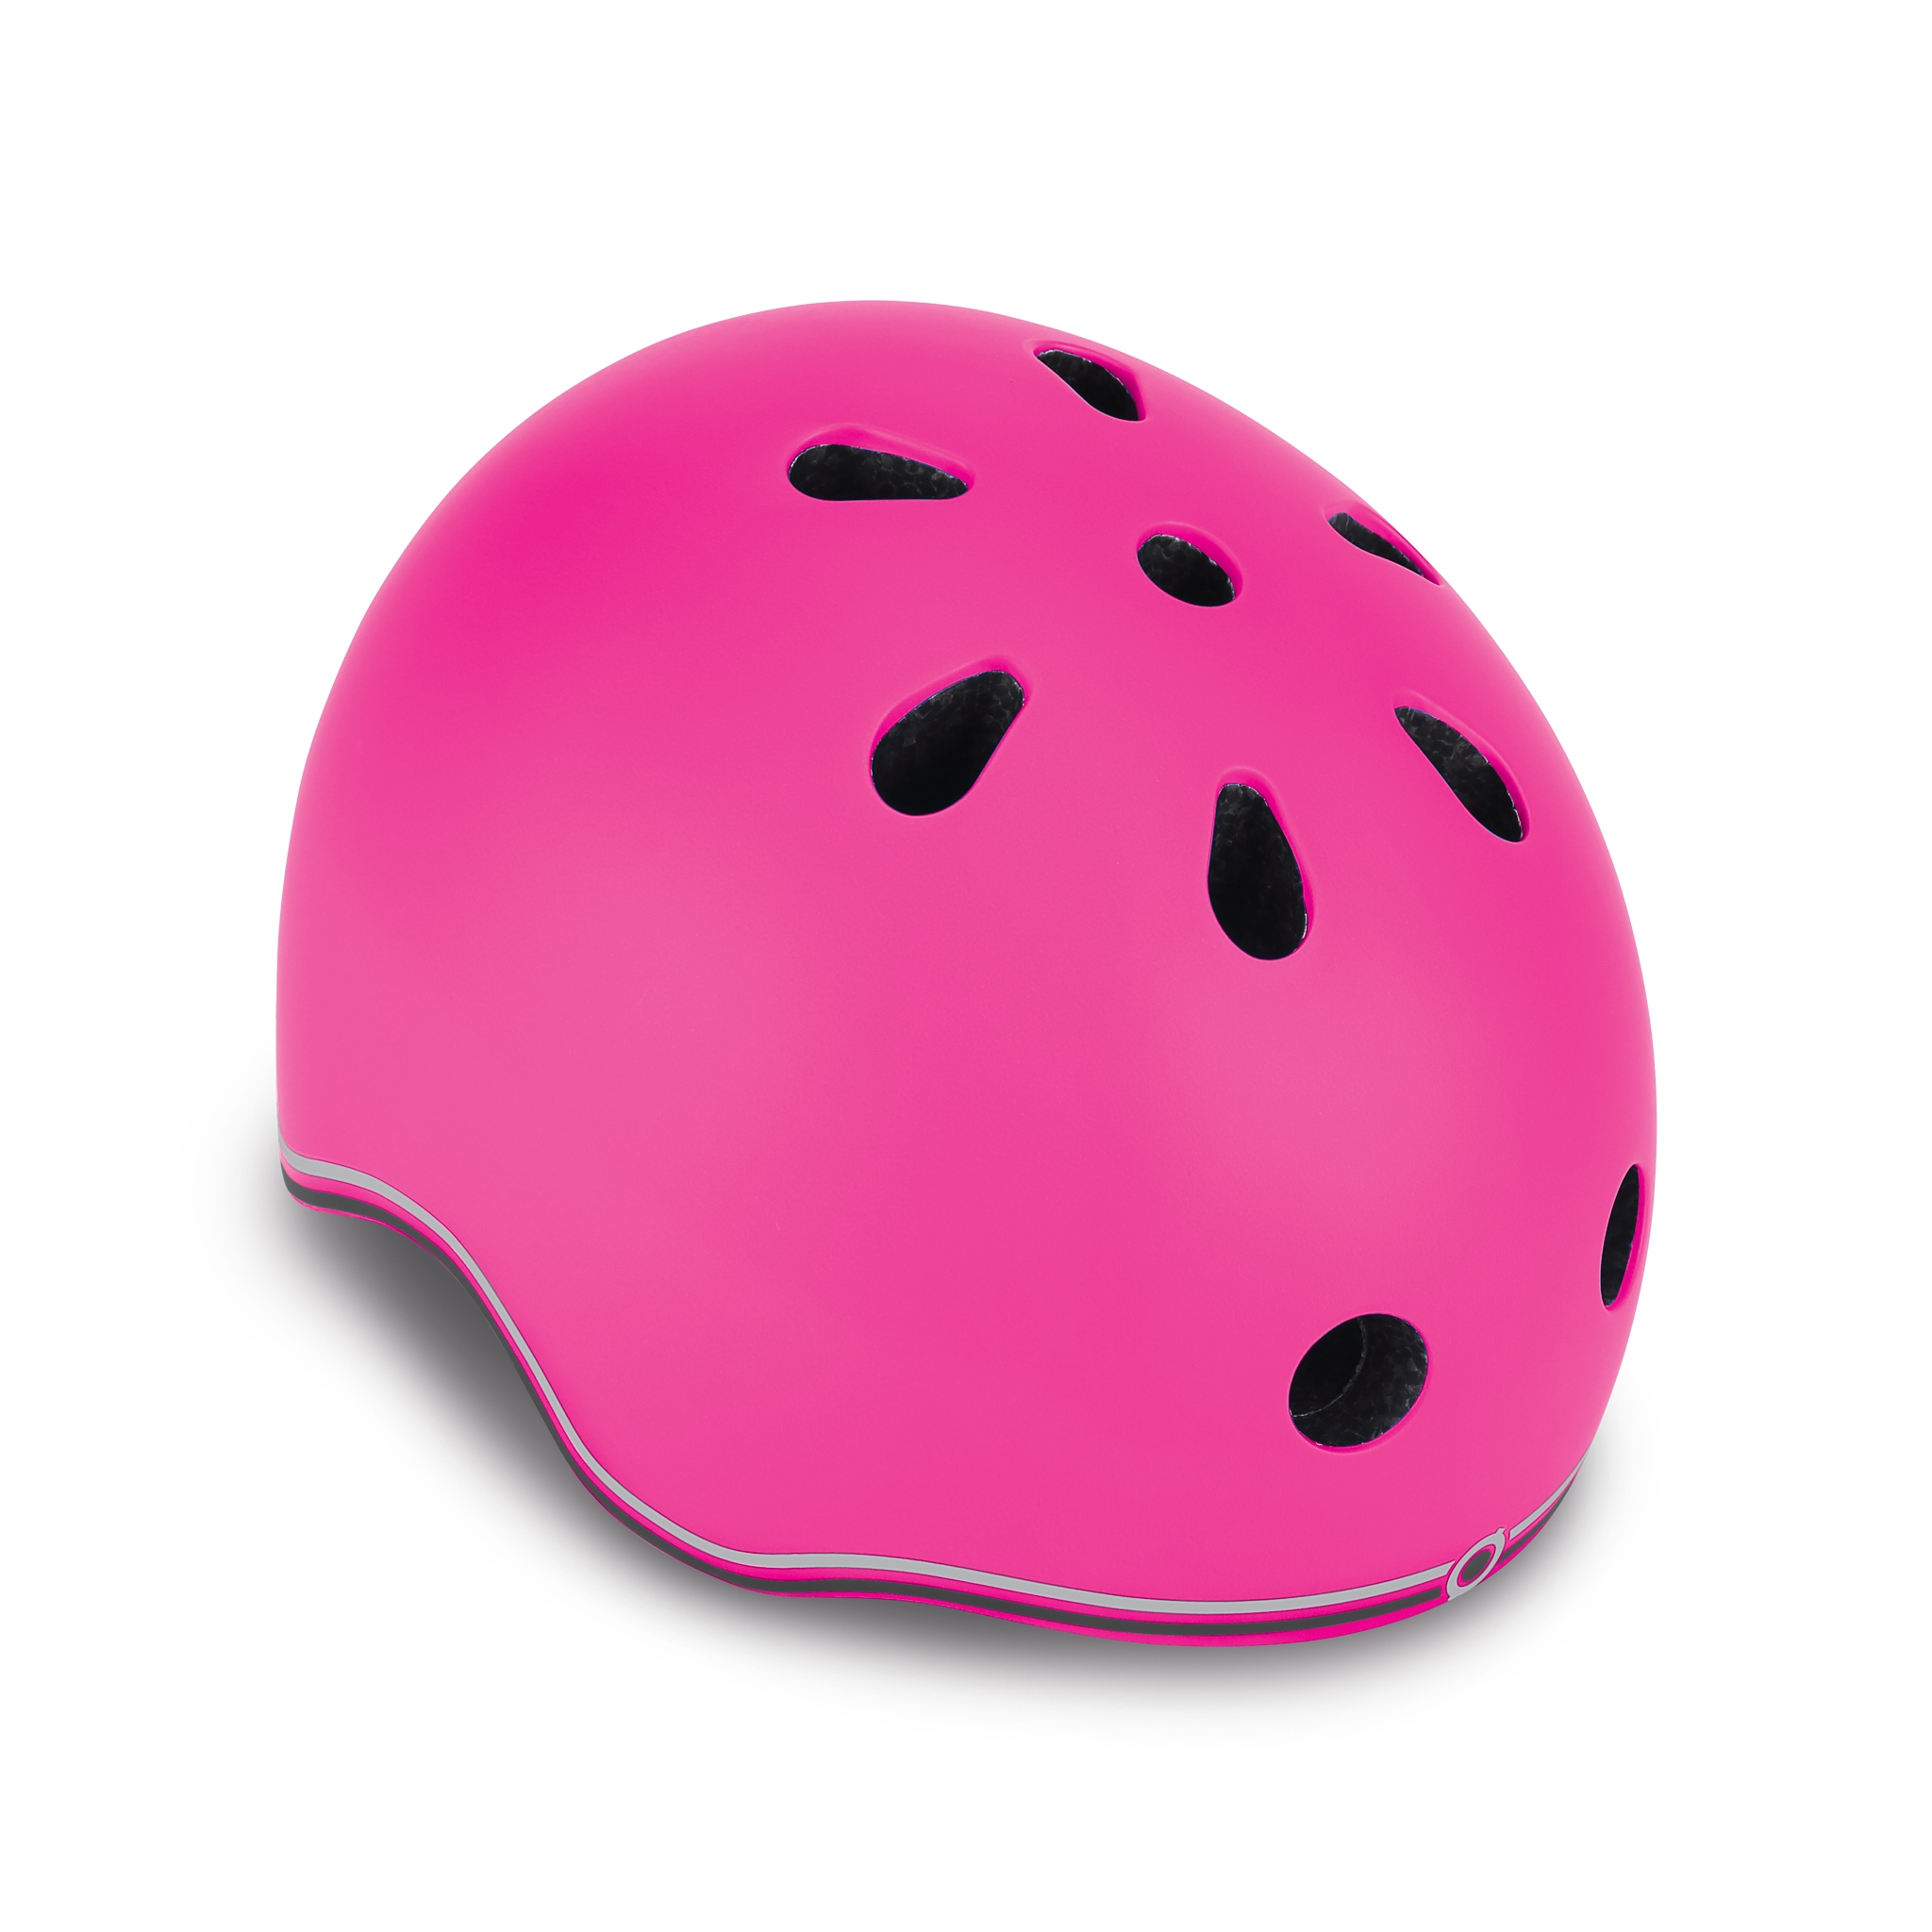 EVO-helmets-scooter-helmets-for-toddlers-in-mold-polycarbonate-outer-shell-neon-pink